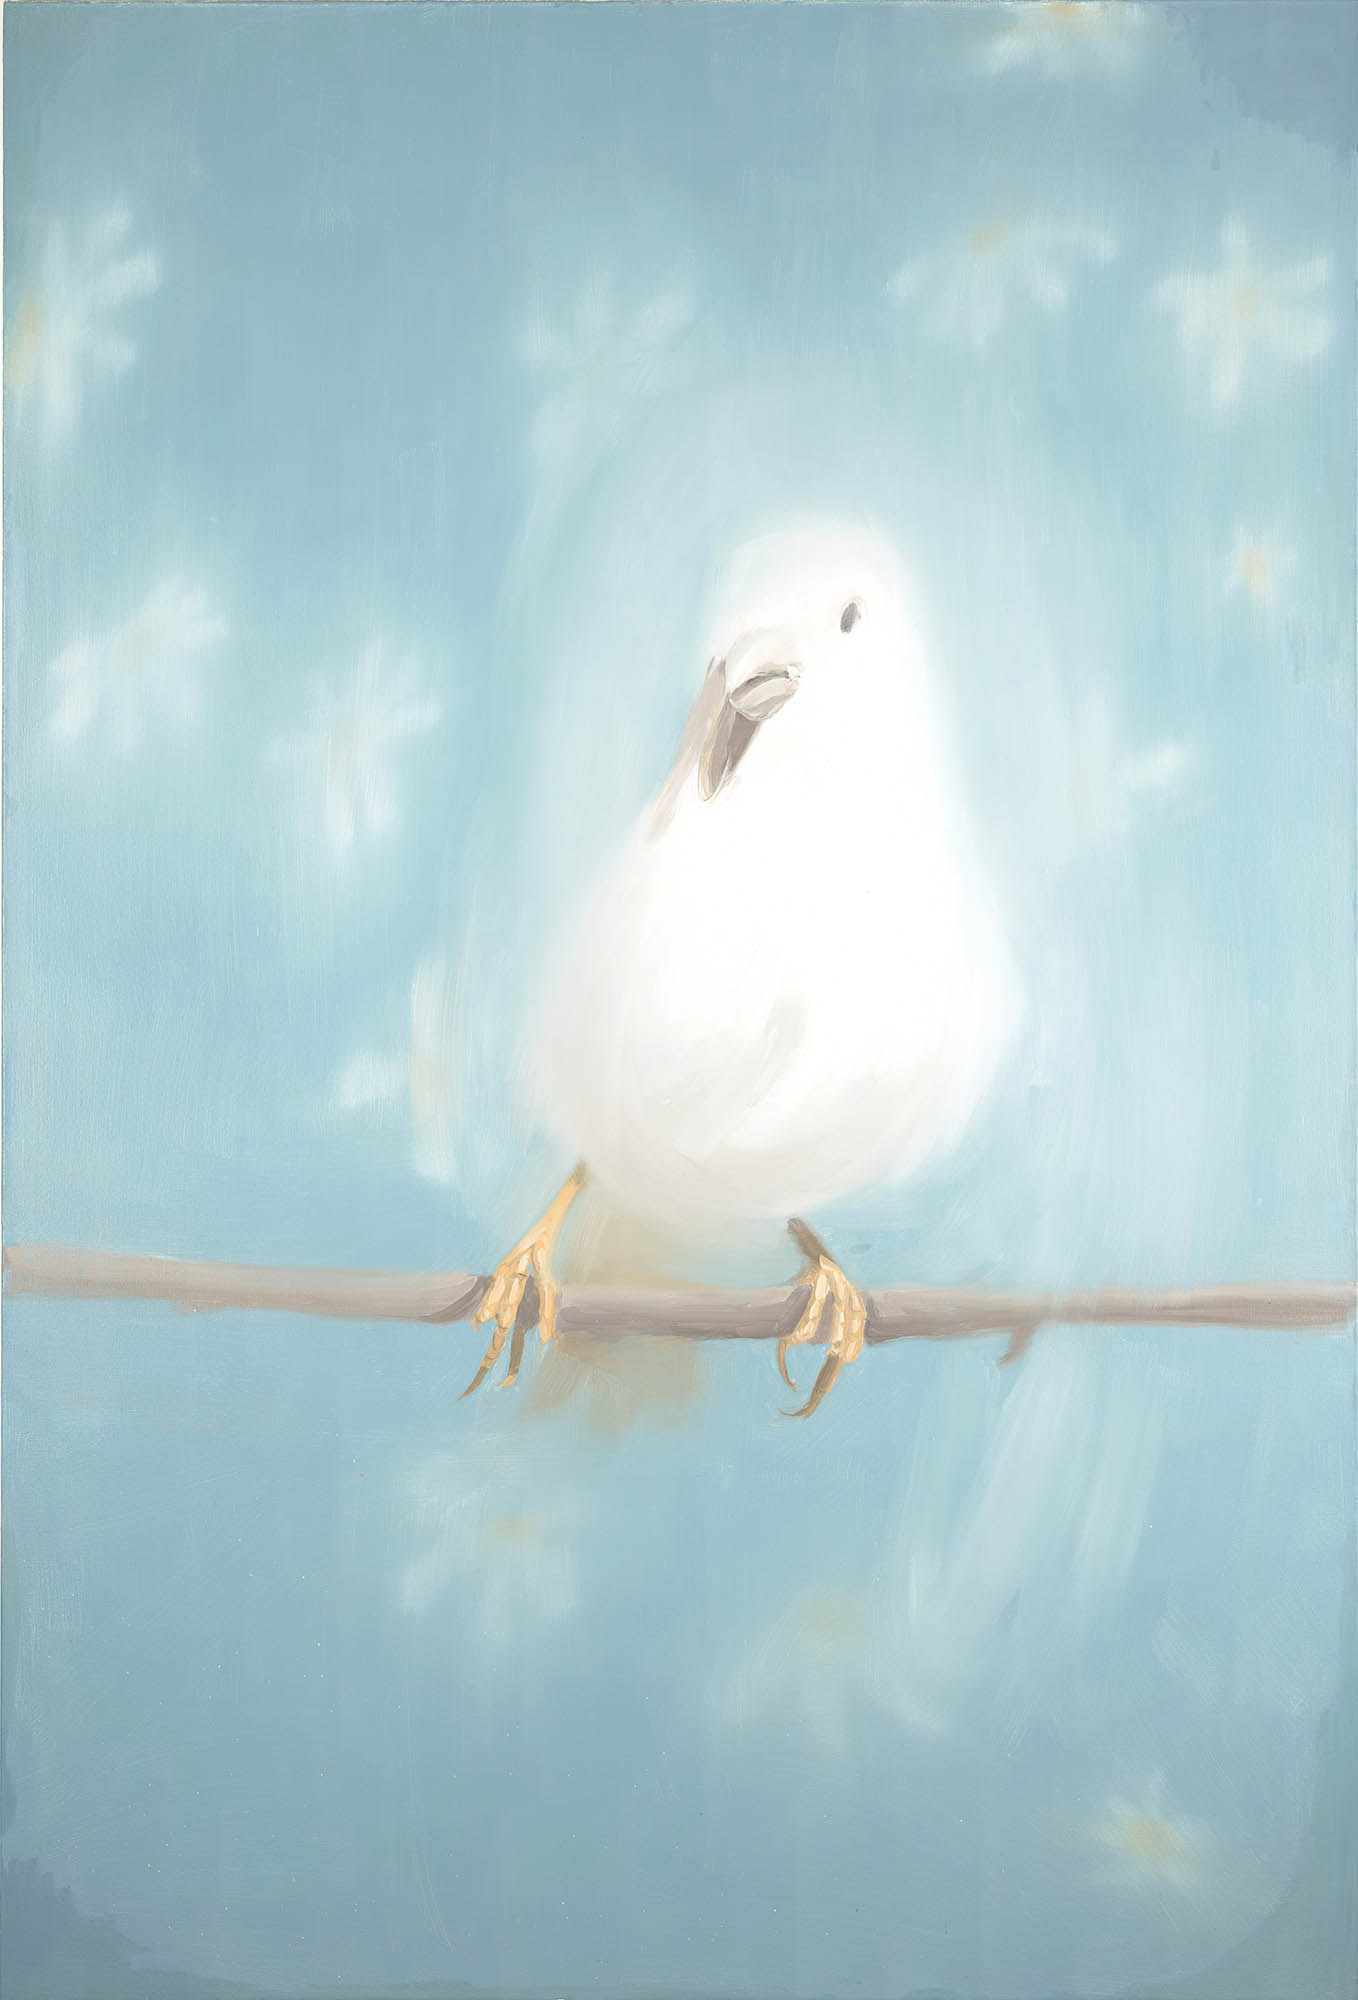 Image of Ann Craven, Little One Eye (White Bird #2), 1998